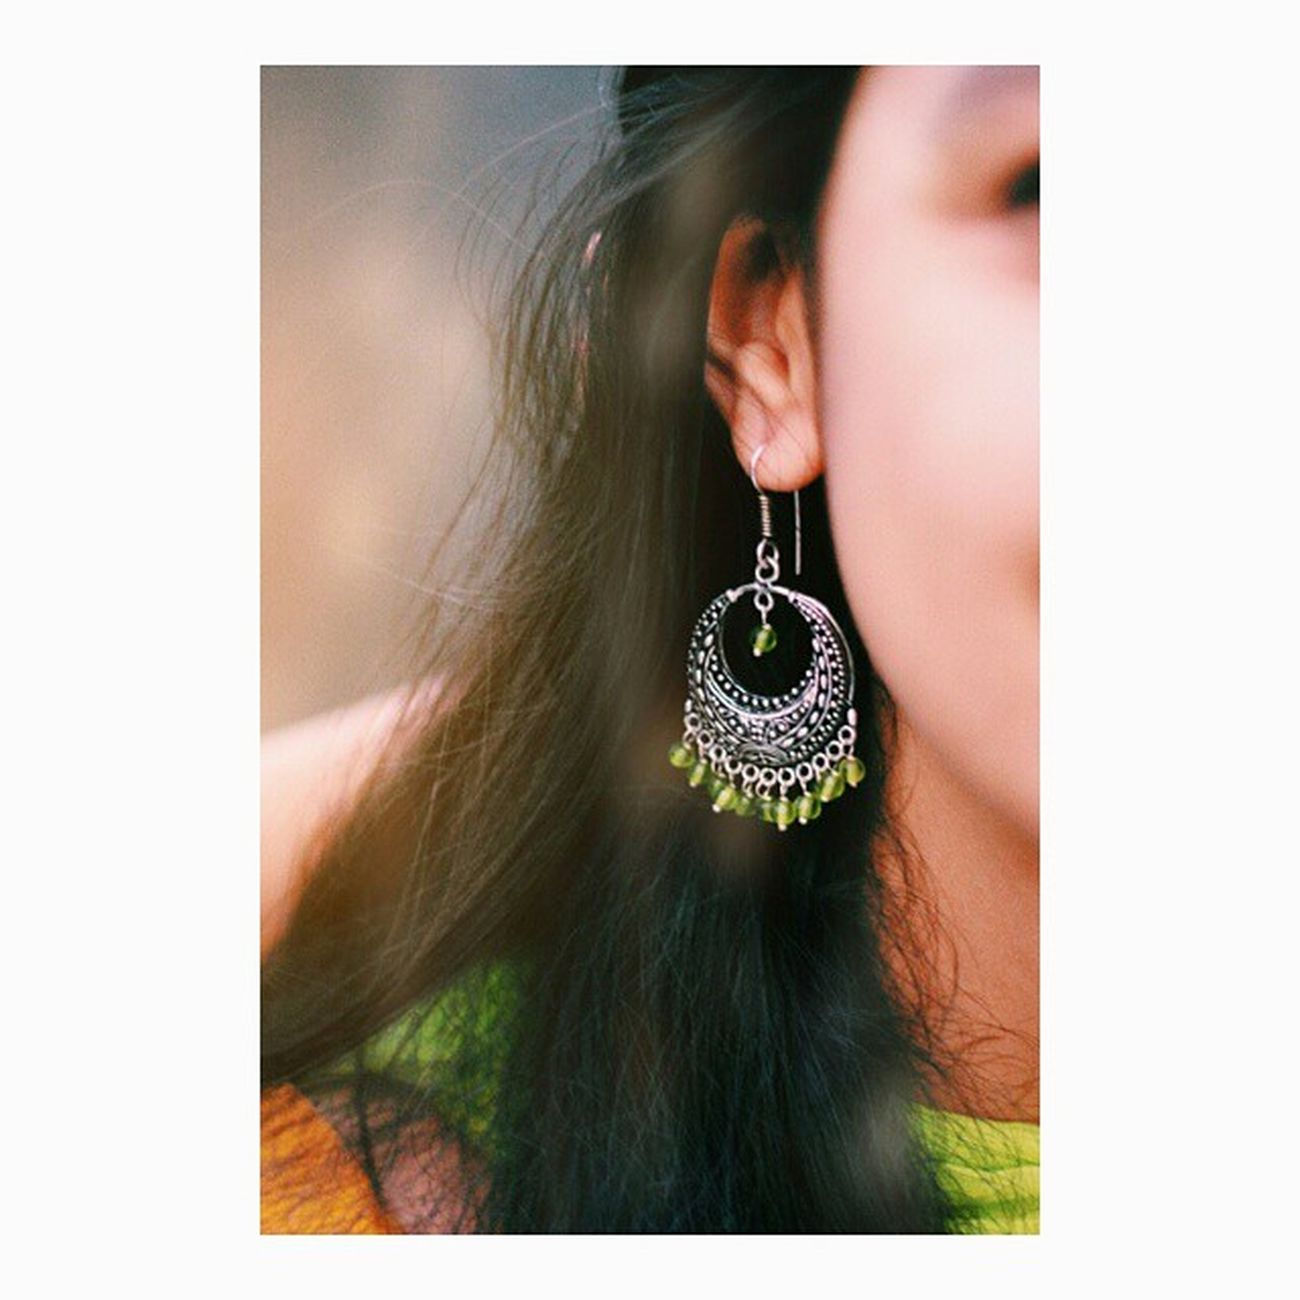 pretty earring, pretty person VSCO Vscocam Afterlight Afterlightapp earring pretty